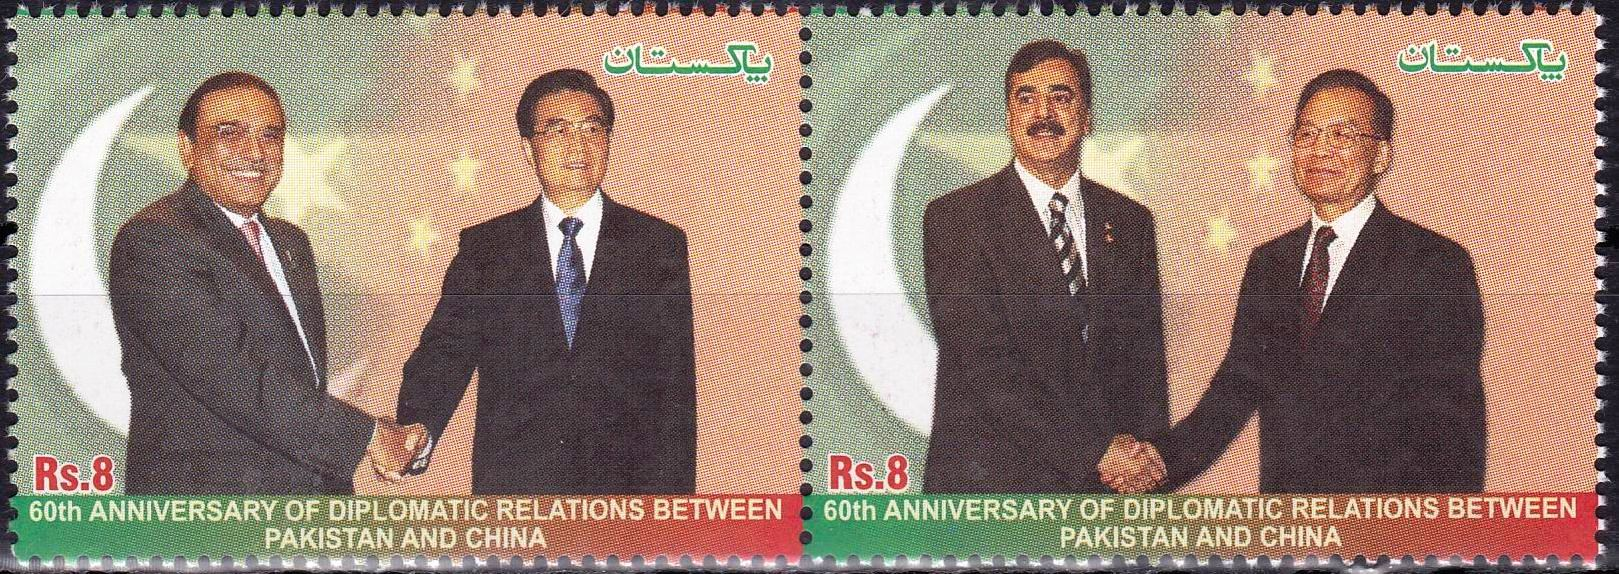 Pakistan Stamps 2011 Diplomatic Relations Pakistan & China